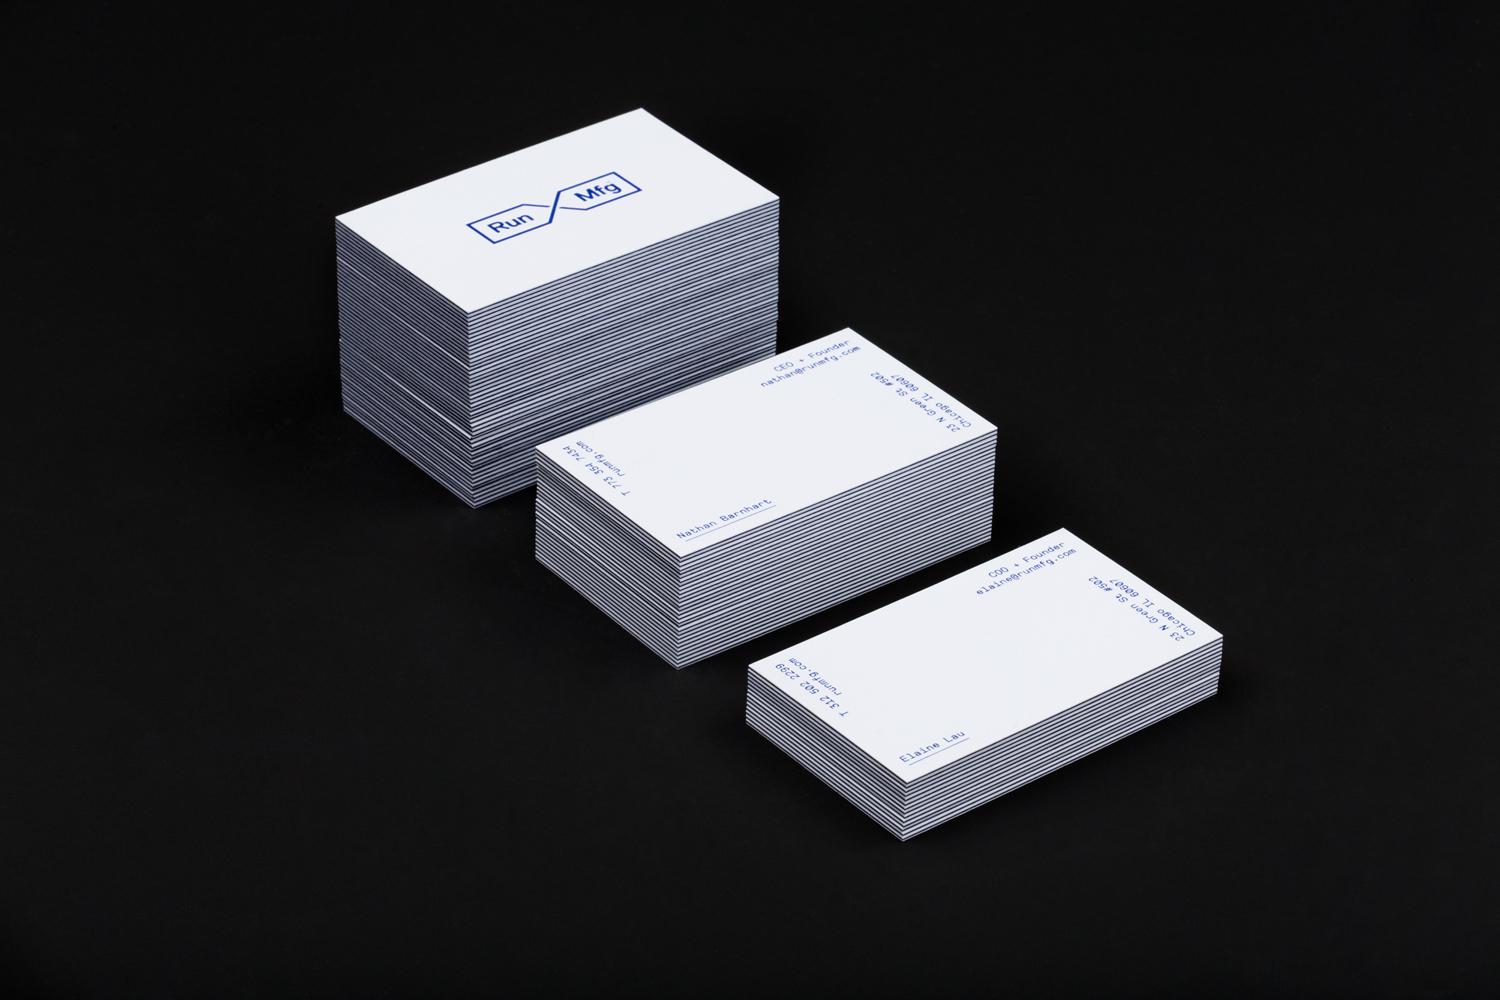 Logo, print, business cards and website by Perky Bros for Chicago-based independent race design and production company Run Mfg